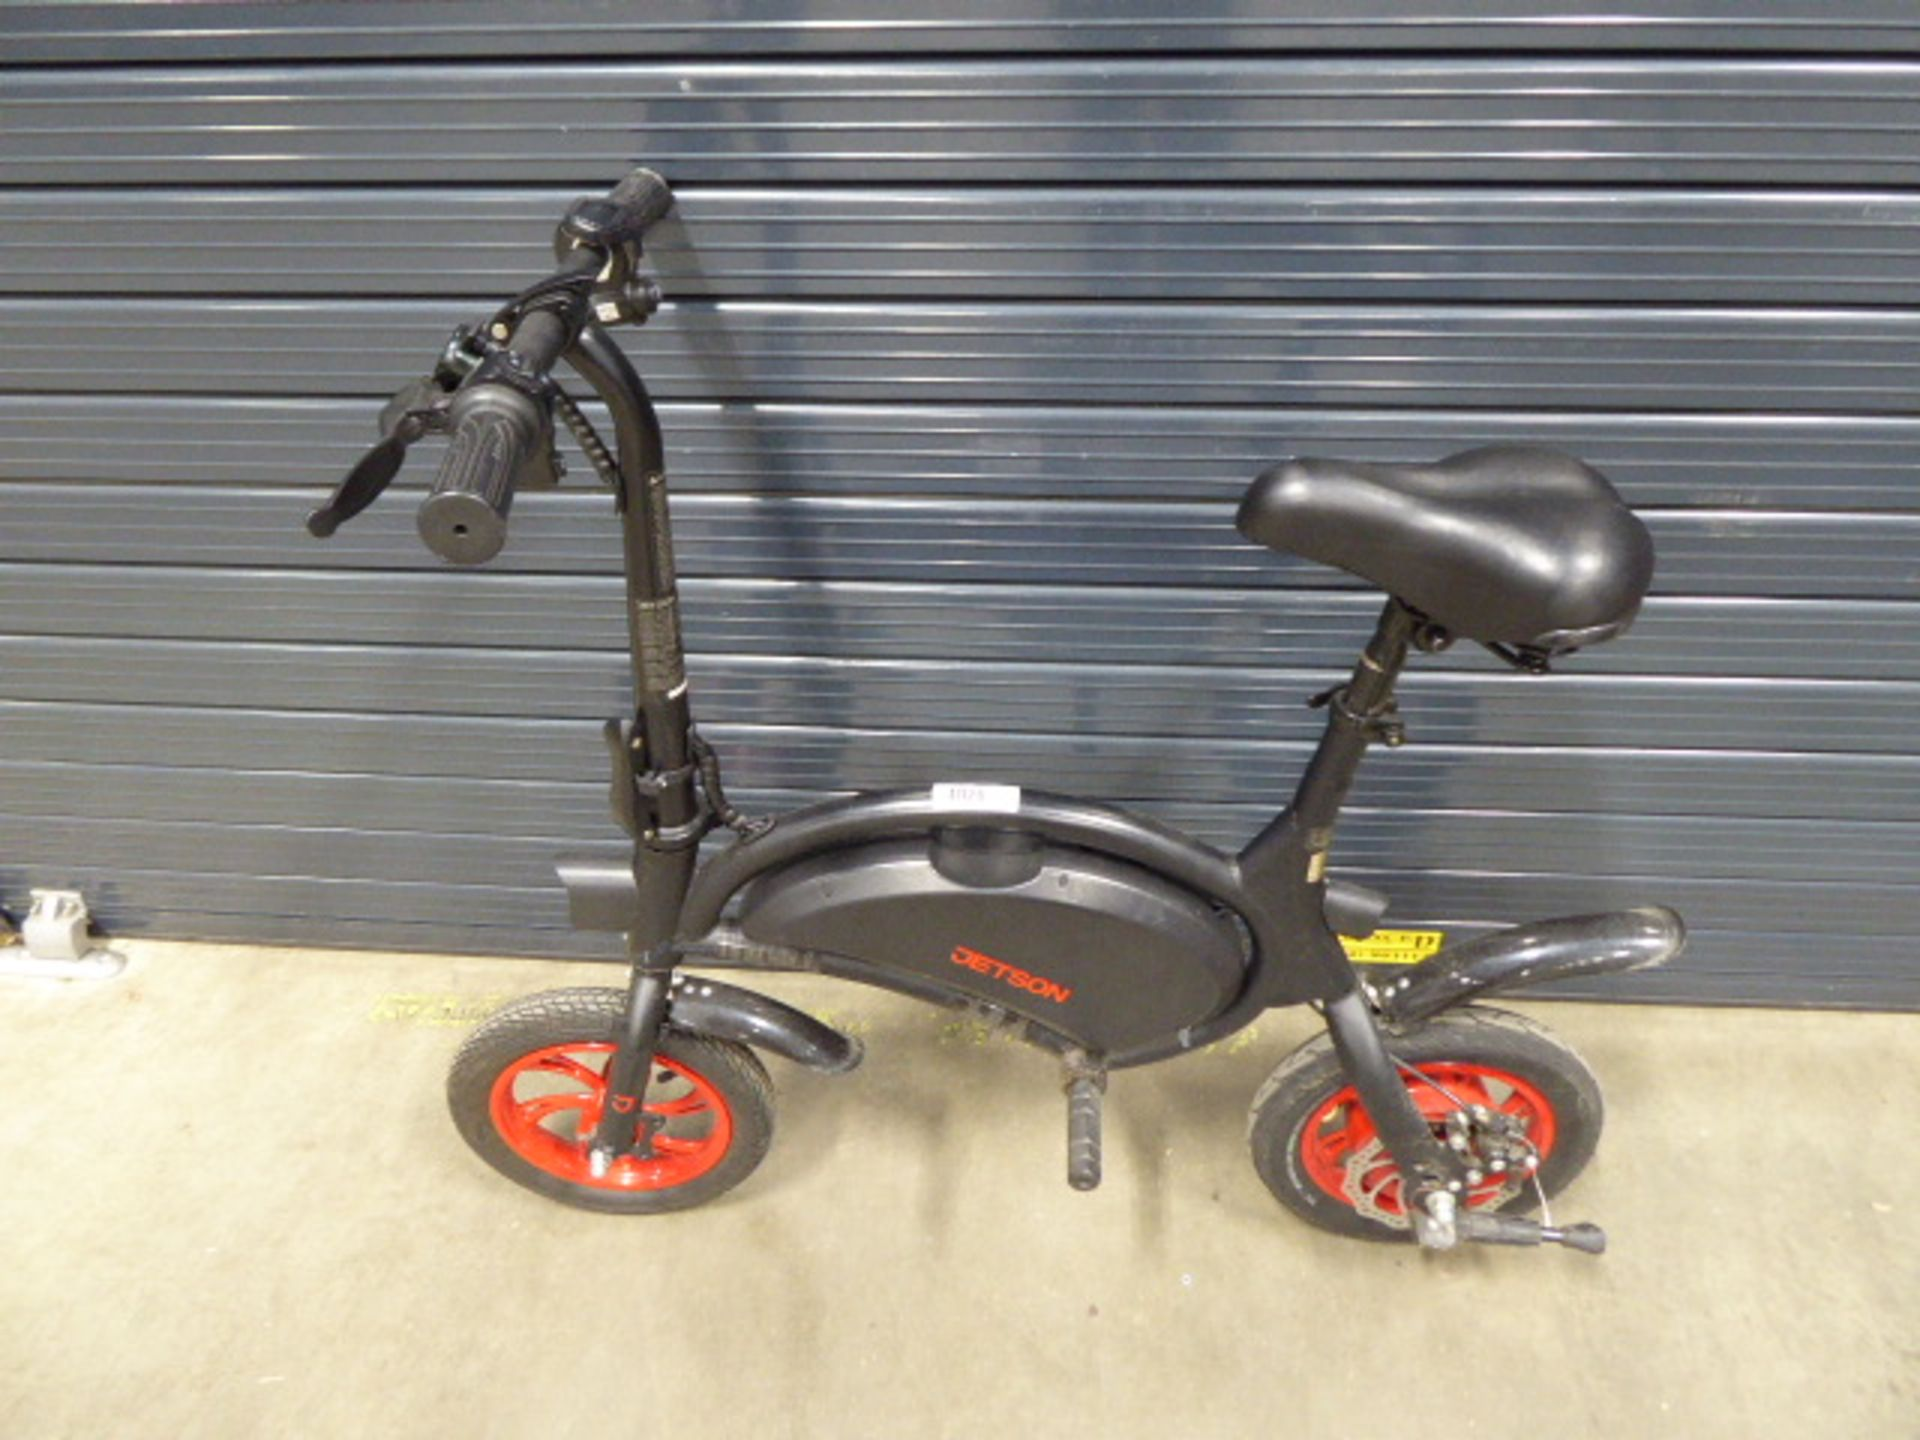 Jetson 2 wheel electric scooter bike (no charger)